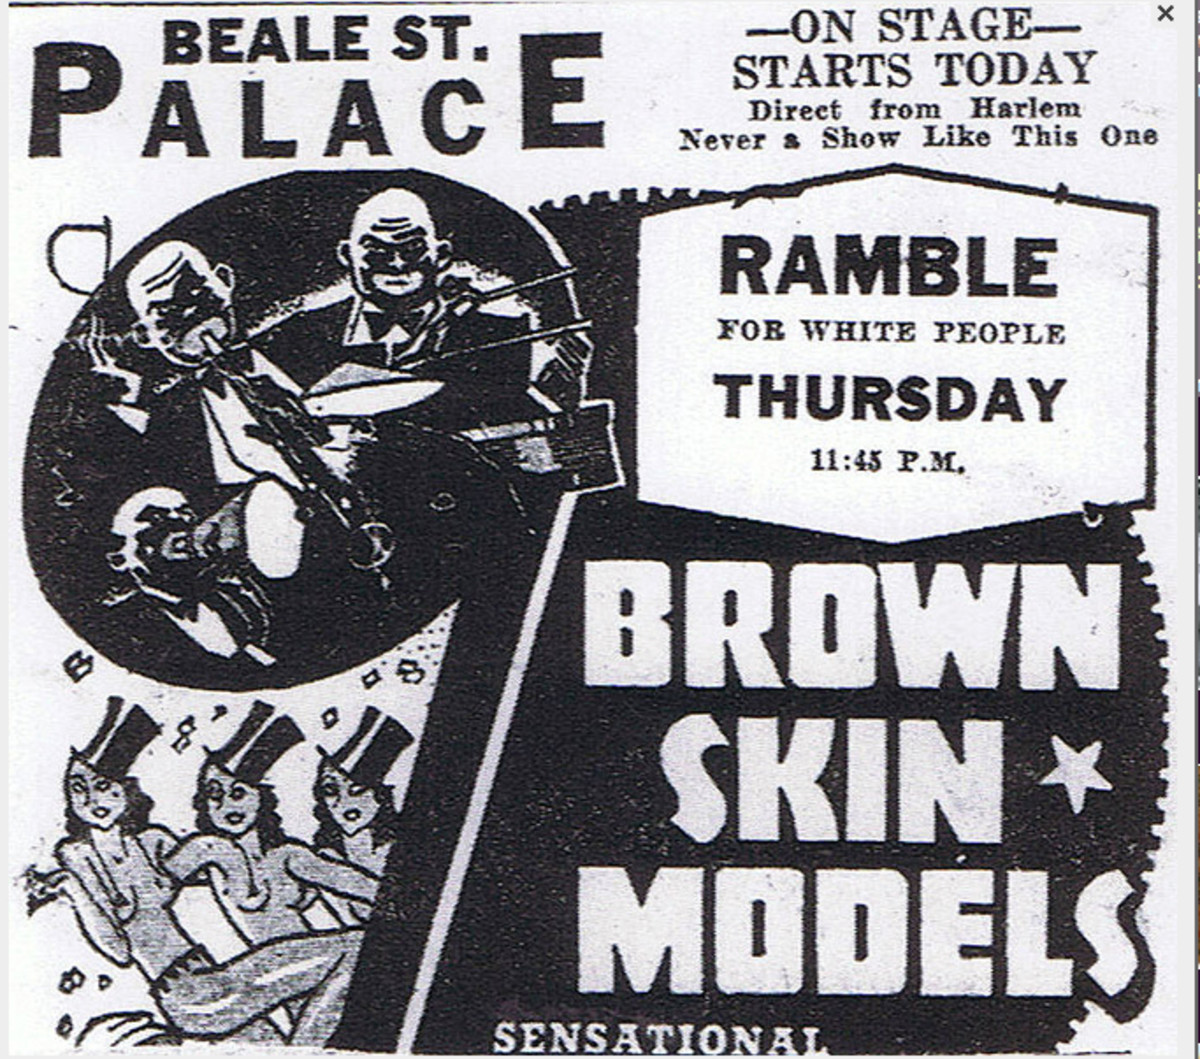 The Brown-Skin Models danced at the Palace Theater on historic Beale Street during the popular and well-attended Midnight Rambles, where they were joined on stage by celebrities such as Ella Fitzgerald, Count Basie, and other famous acts.